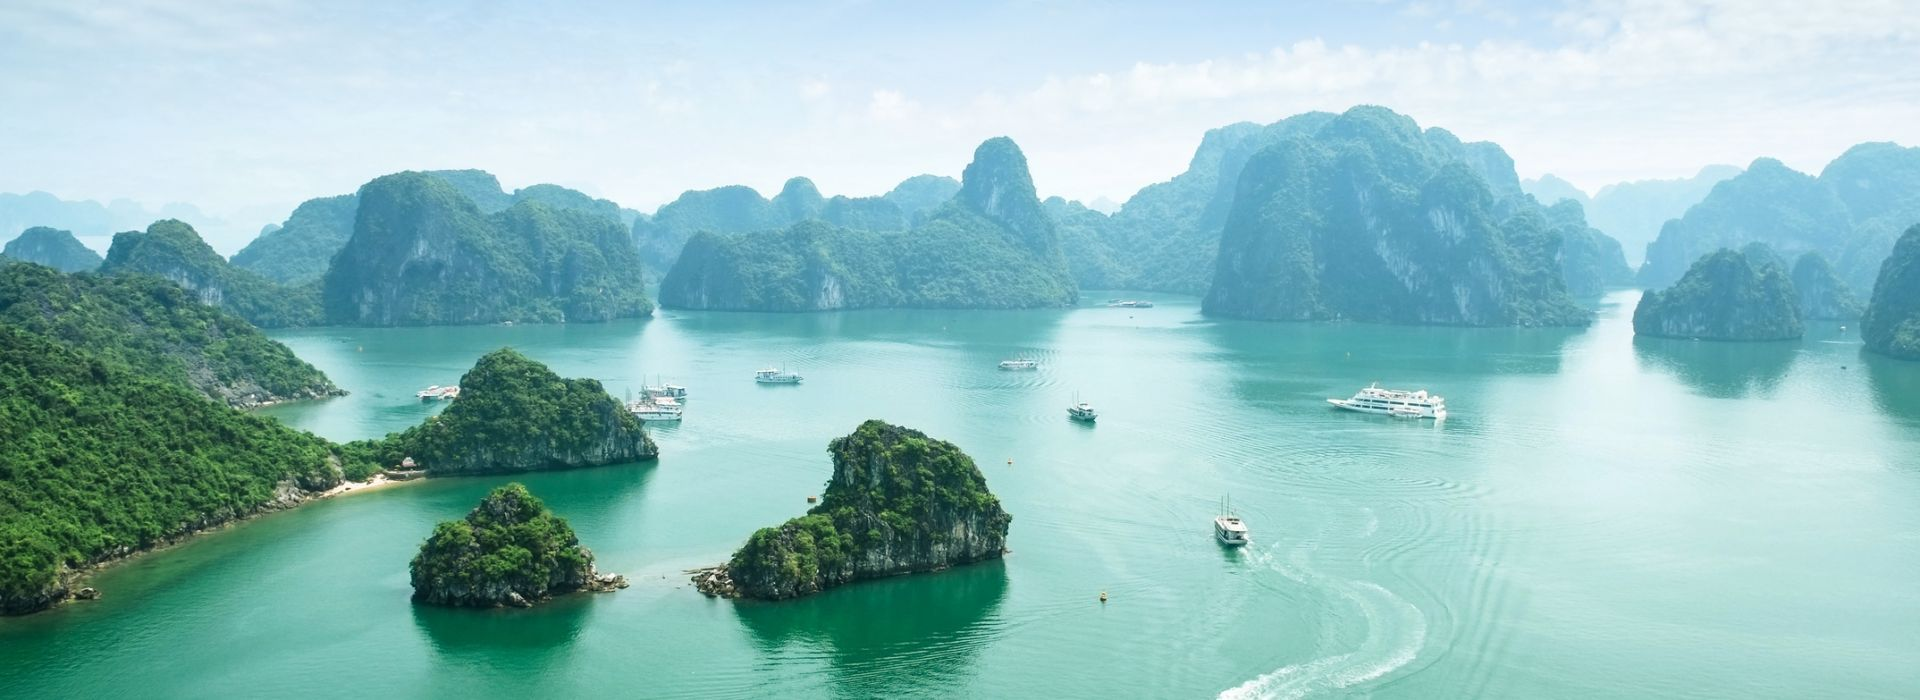 Sightseeing Tours in Ho Chi Minh City